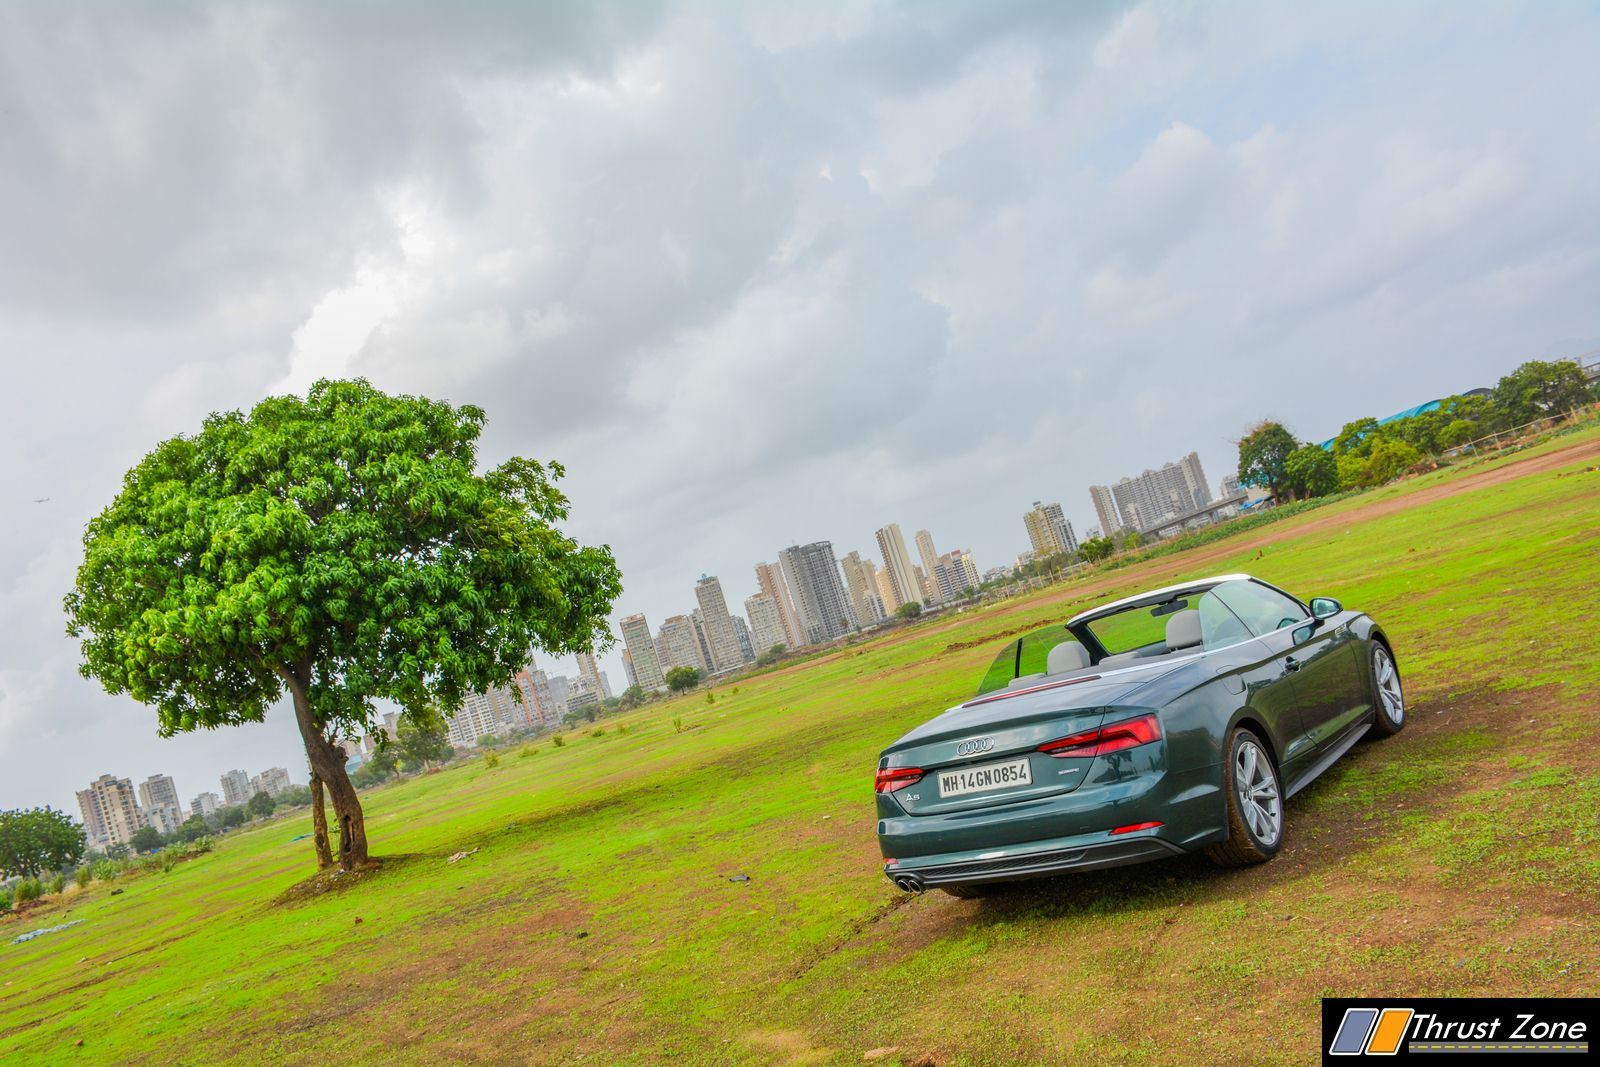 2019-Audi-A5-Cabriolet-Convertible-India-Diesel-Review (16)